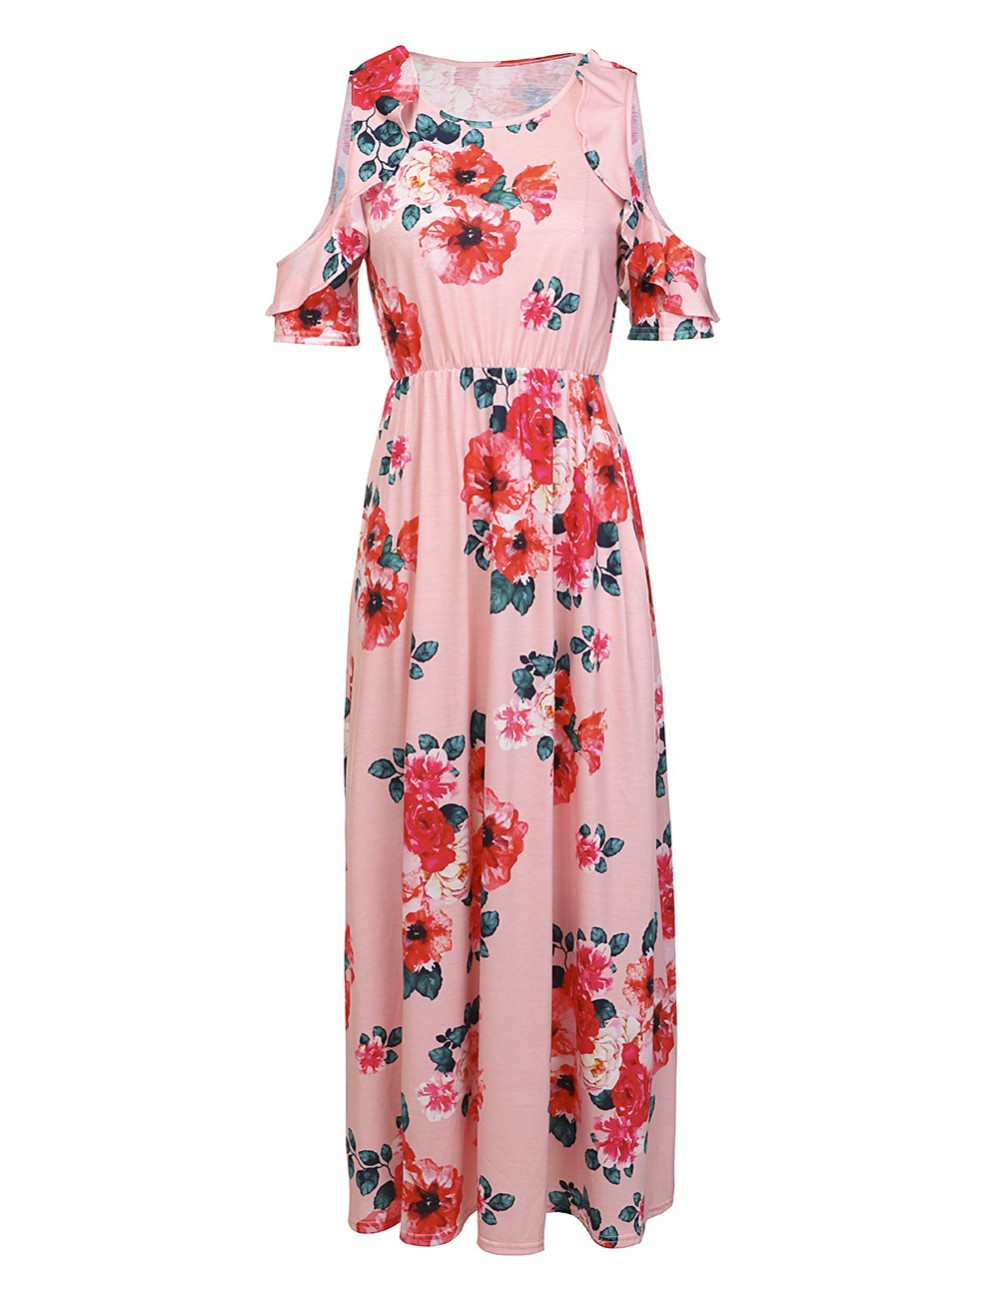 Ruffle Cold Shoulder Dress Smooth Maxi Length Women Fashion Style